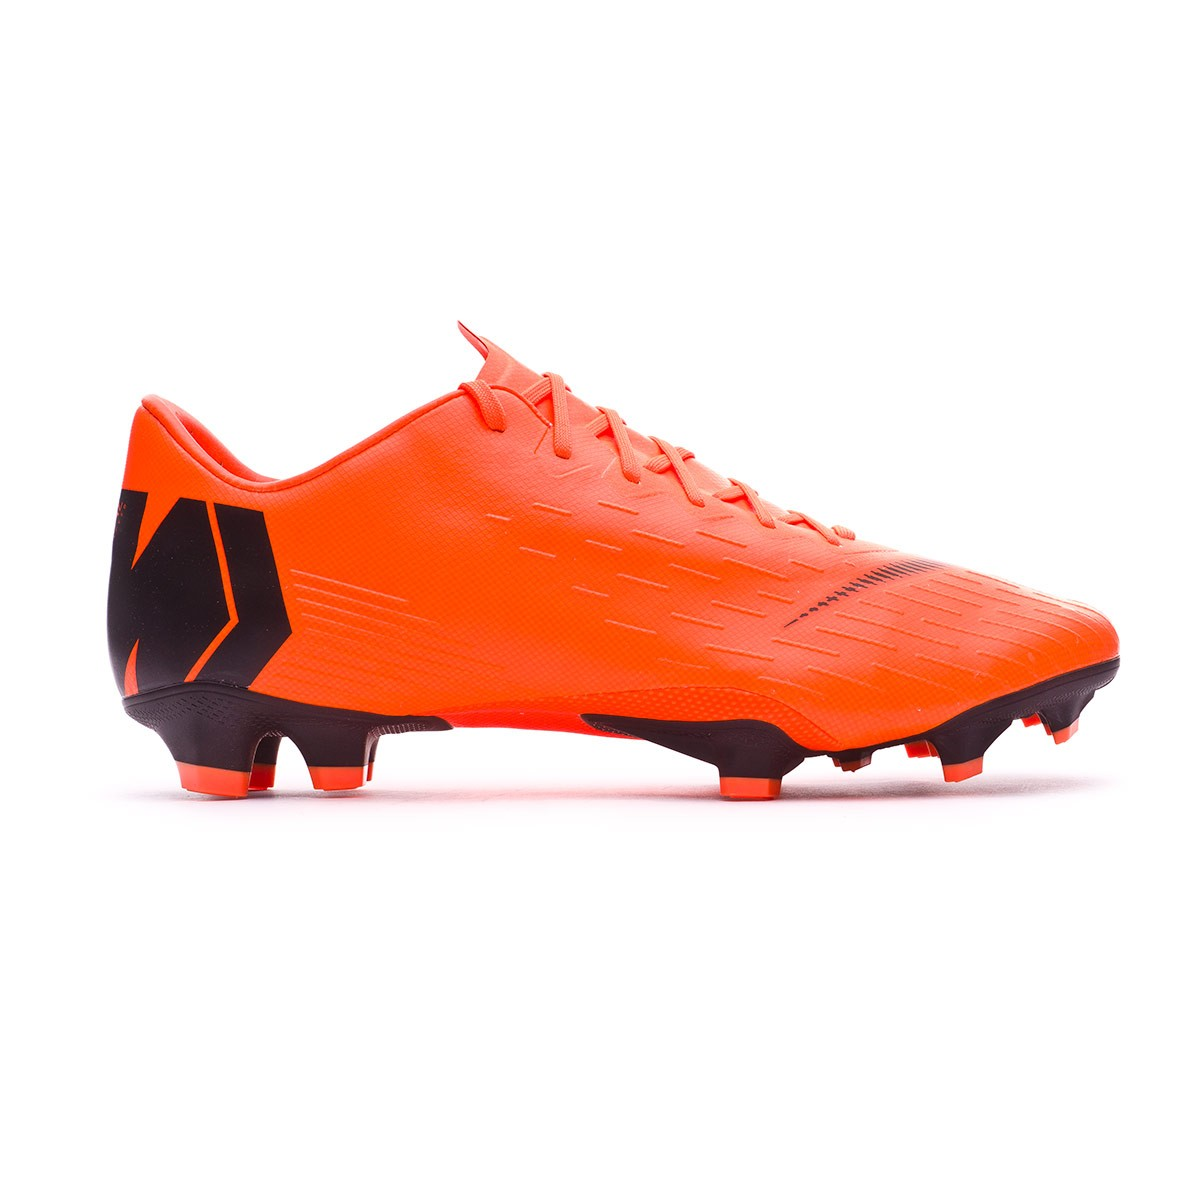 brand new 9a673 deeb0 Chaussure de foot Nike Mercurial Vapor XII Pro FG Total orange-Black-Volt -  Boutique de football Fútbol Emotion